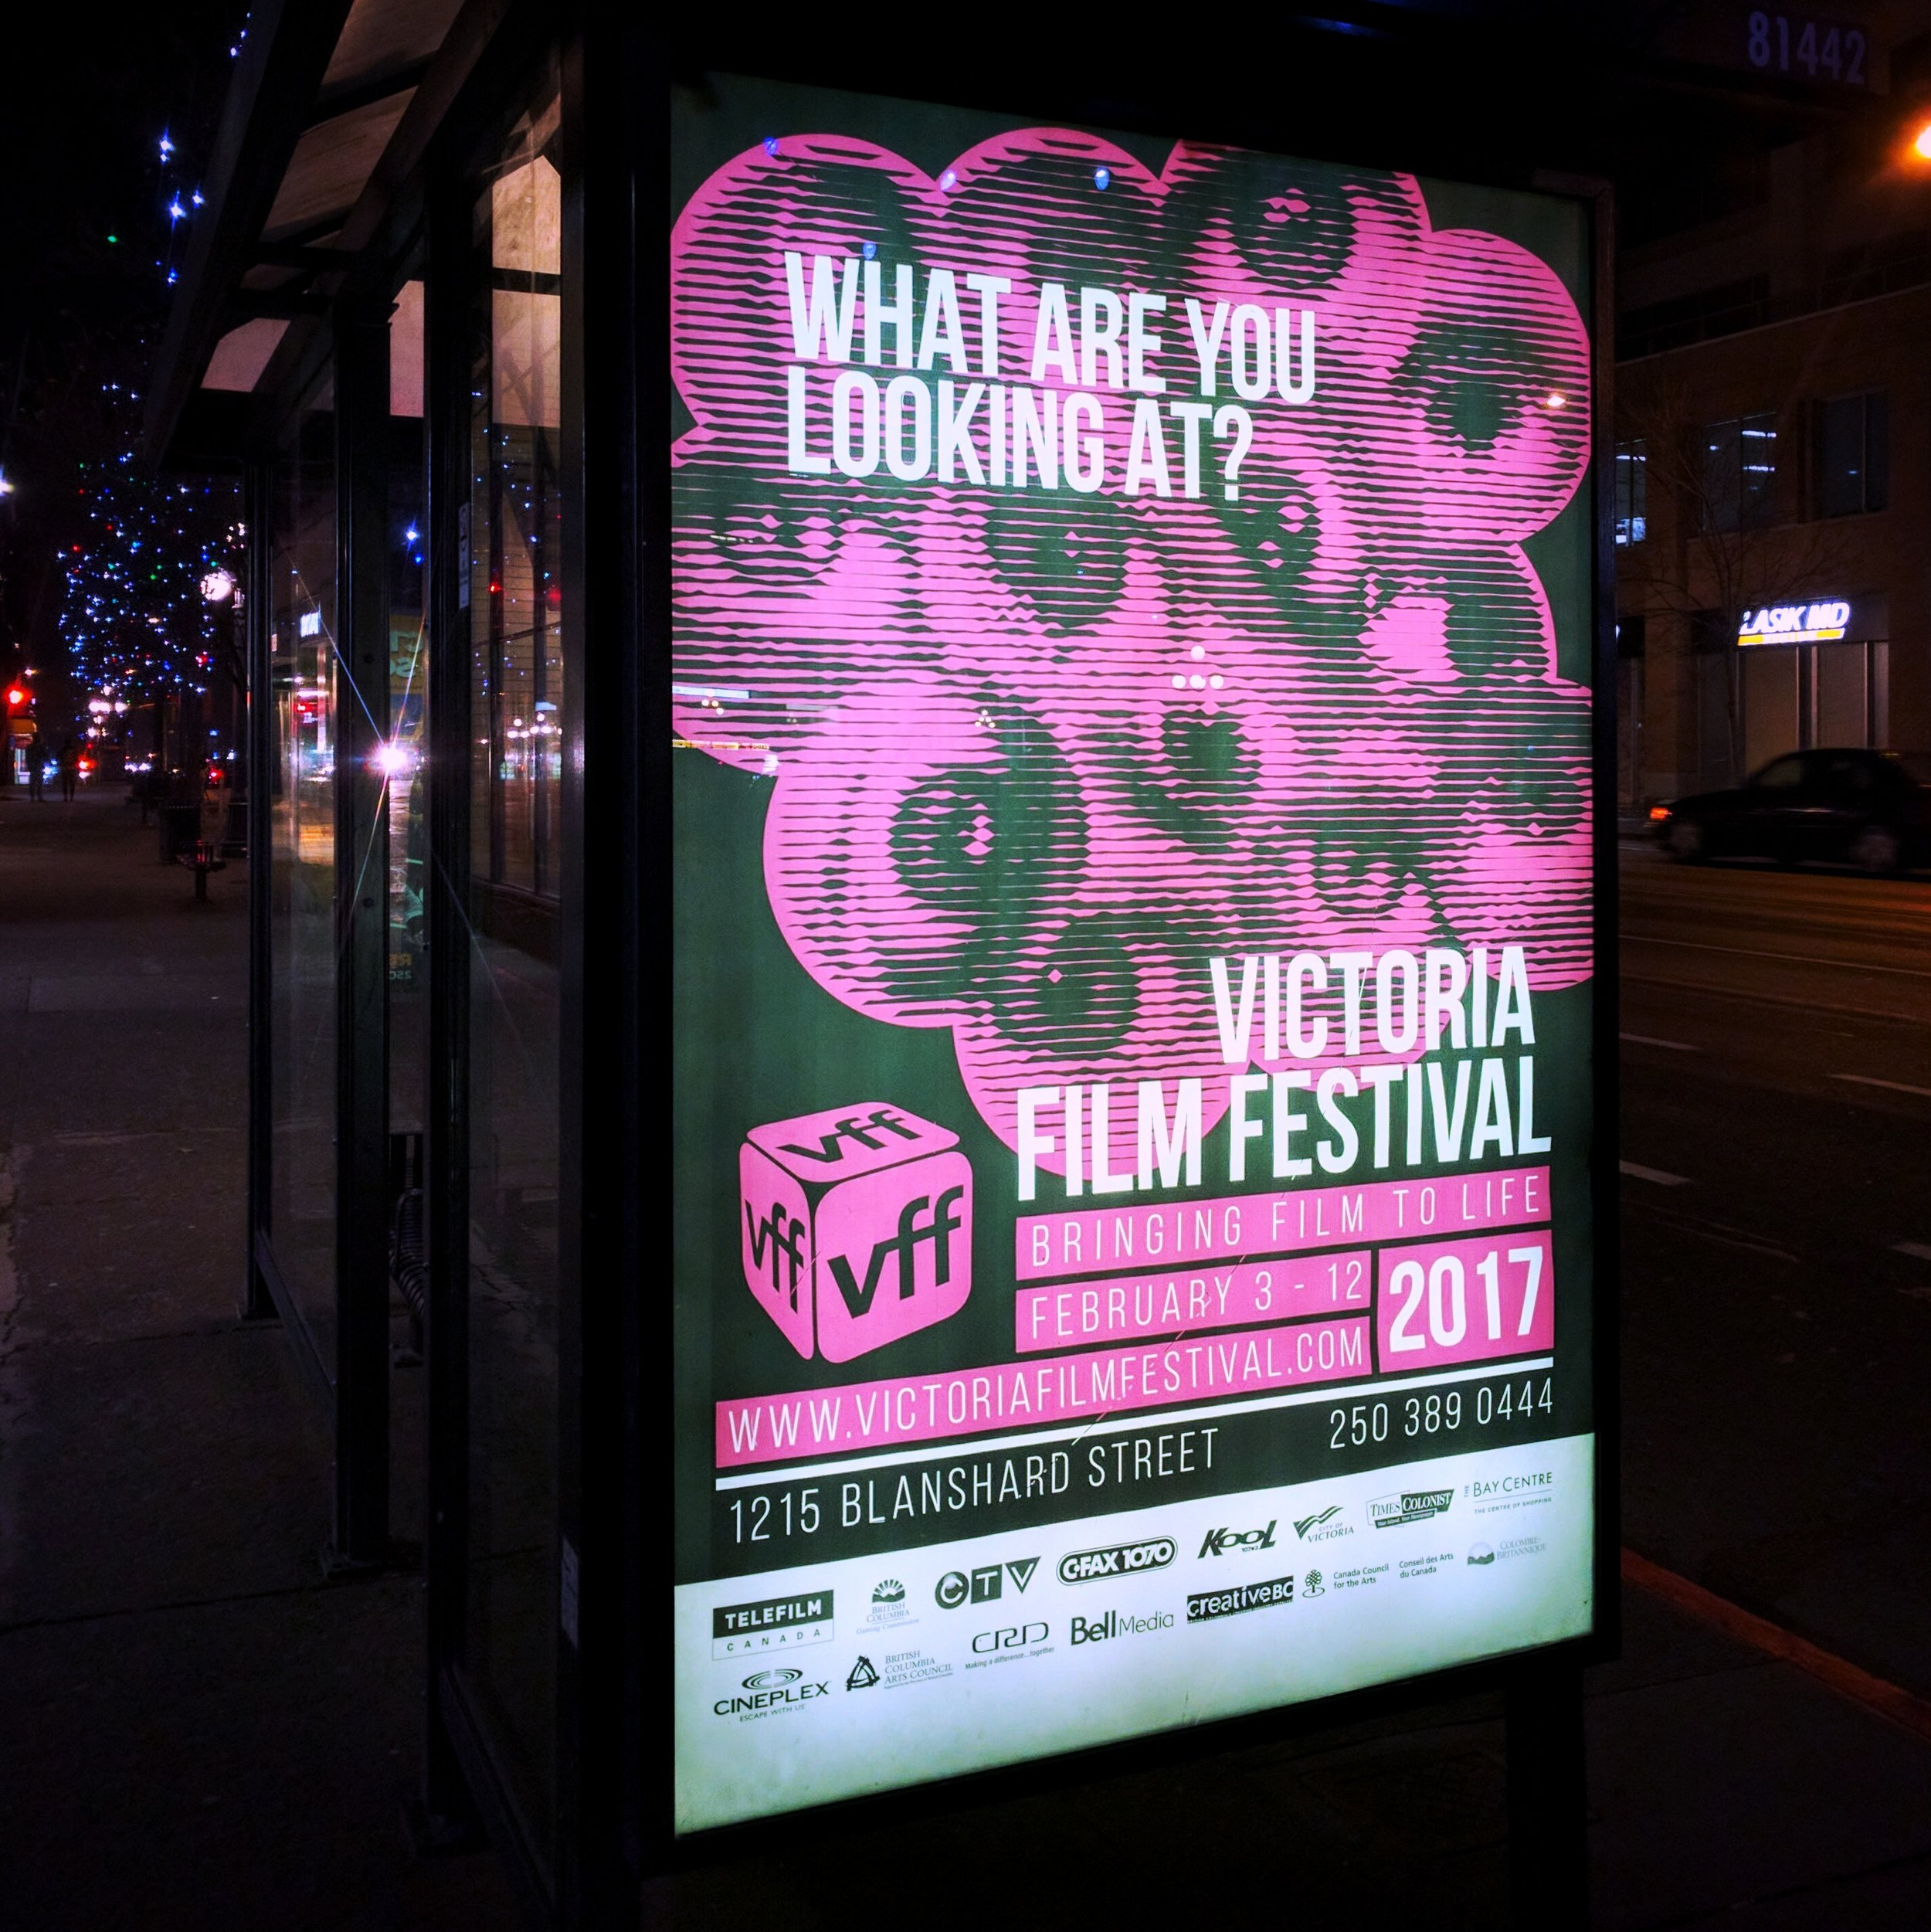 The Victoria Film Festival commissioned us to design the graphic presence of their 2017 event, including this poster design which popped up on a bus shelter next to Victoria City Hall.